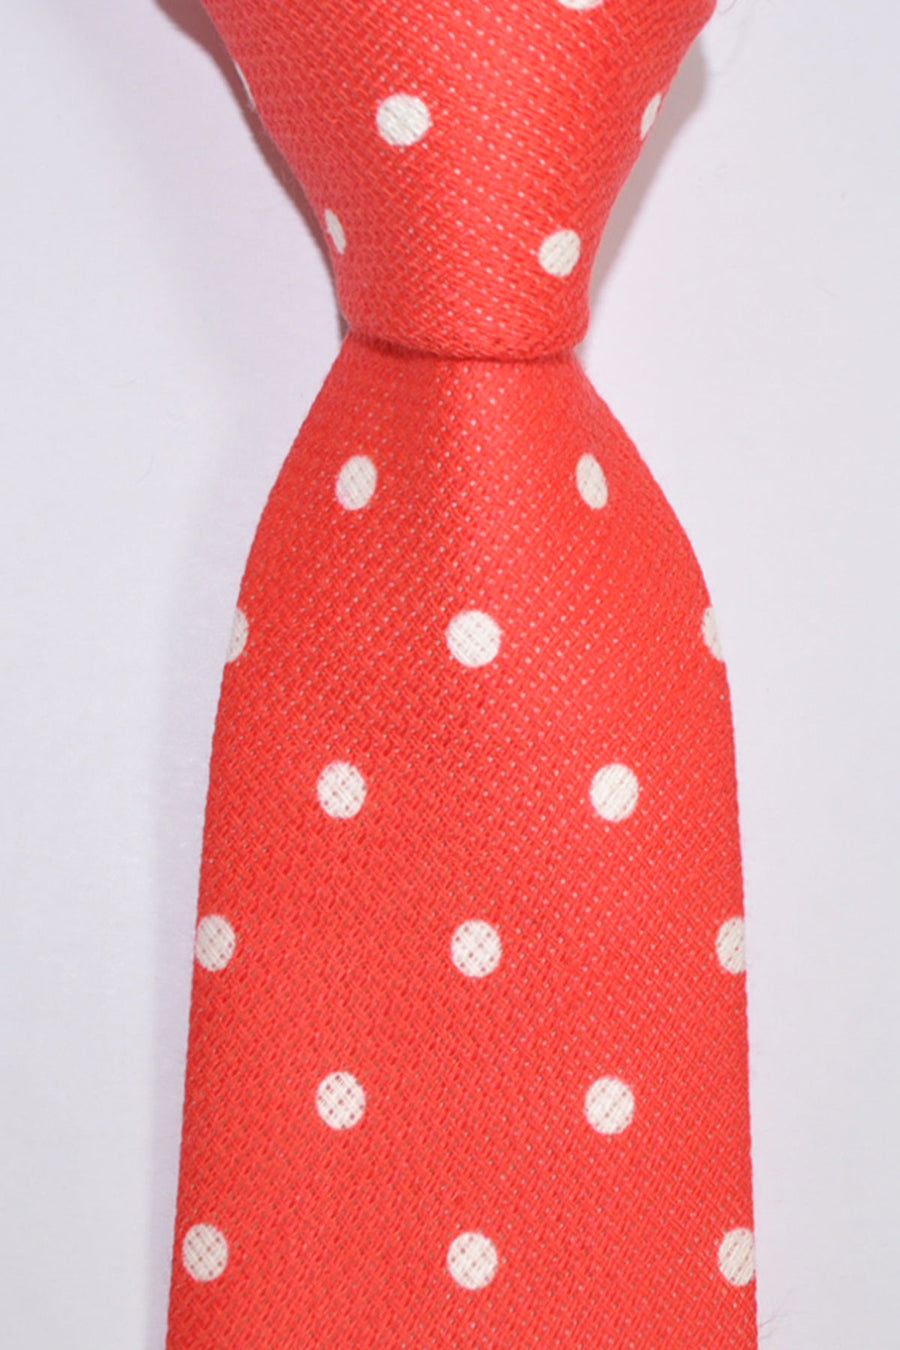 Luigi Borrelli Tie Red White Polka Dots Cotton Linen